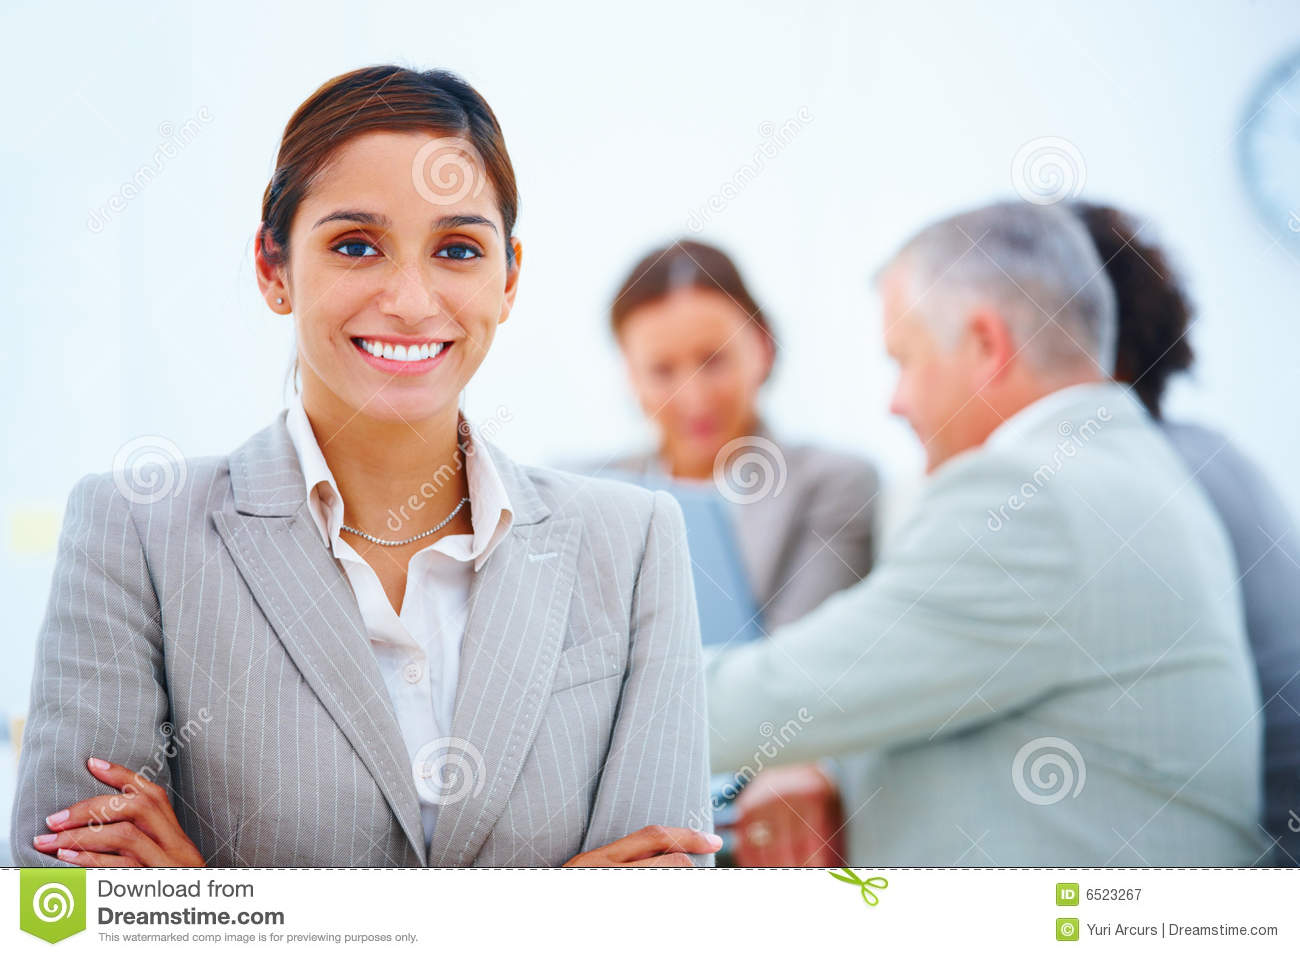 Royalty Free Stock Photography: Portrait of a smiling ...